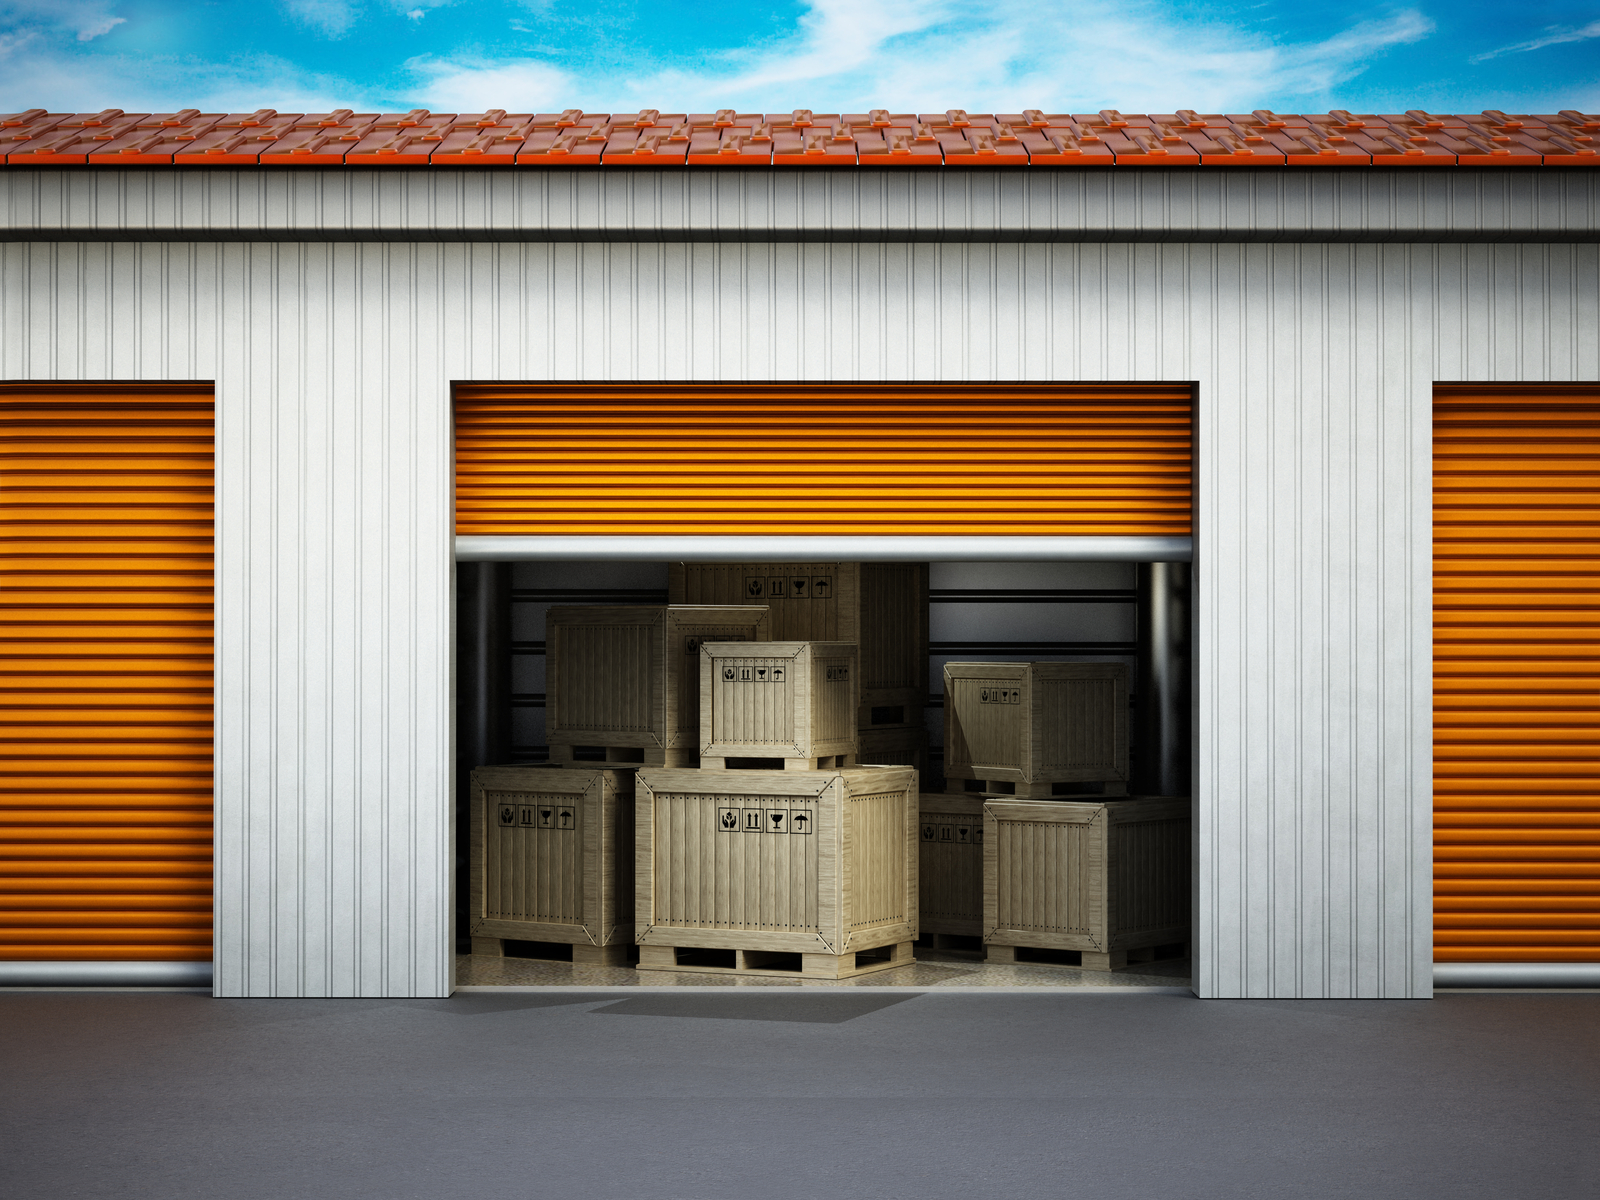 Storage business in Tennessee